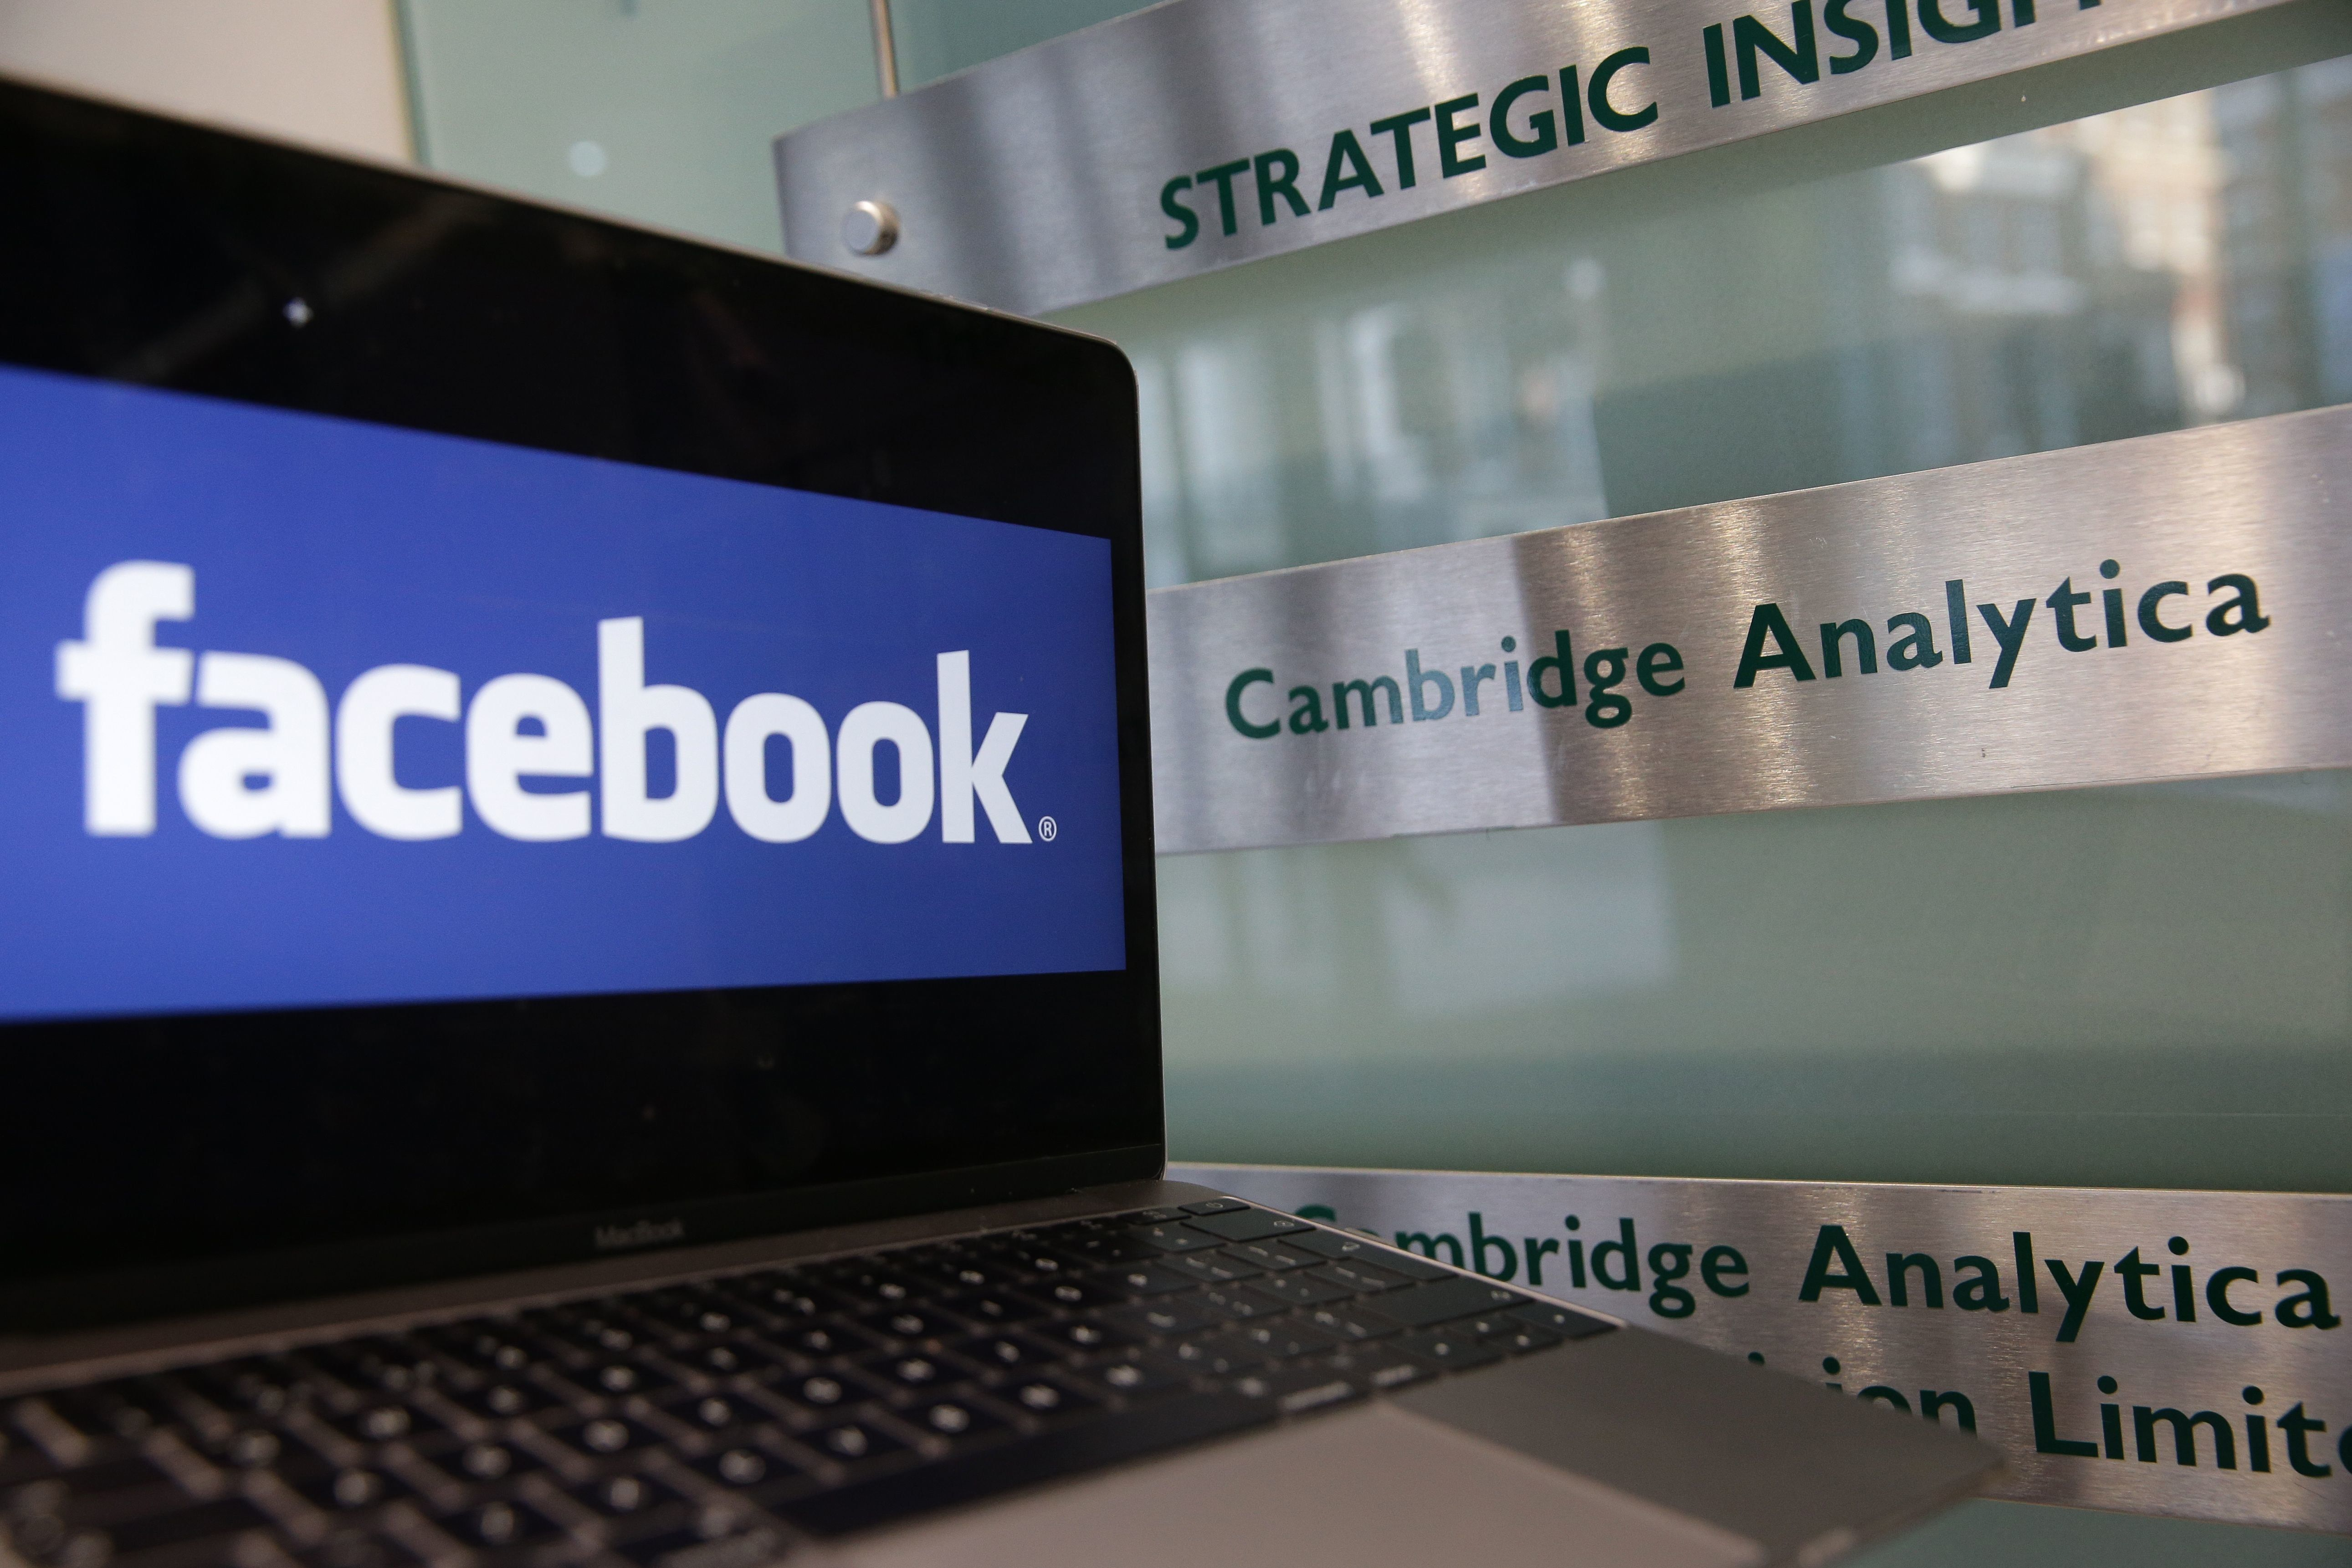 Facebook respond to facing £500k fine over Cambridge Analytica scandal